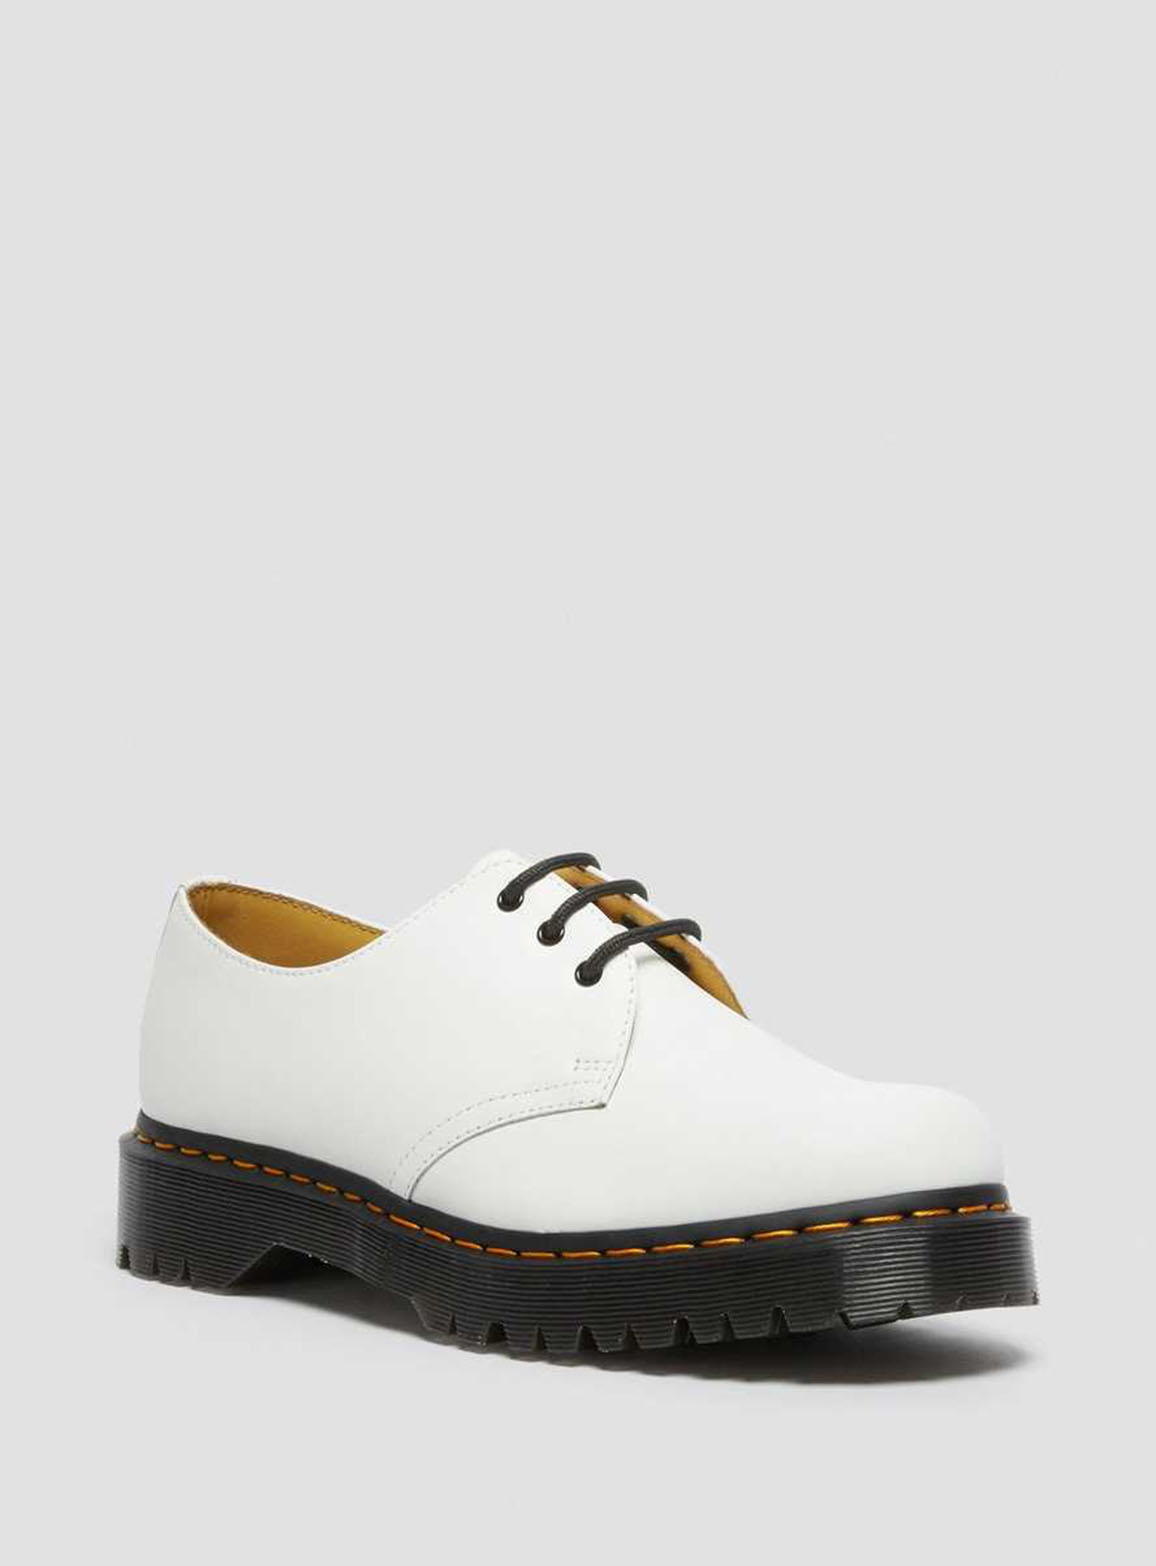 White 1461 Bex smooth leather oxford shoes